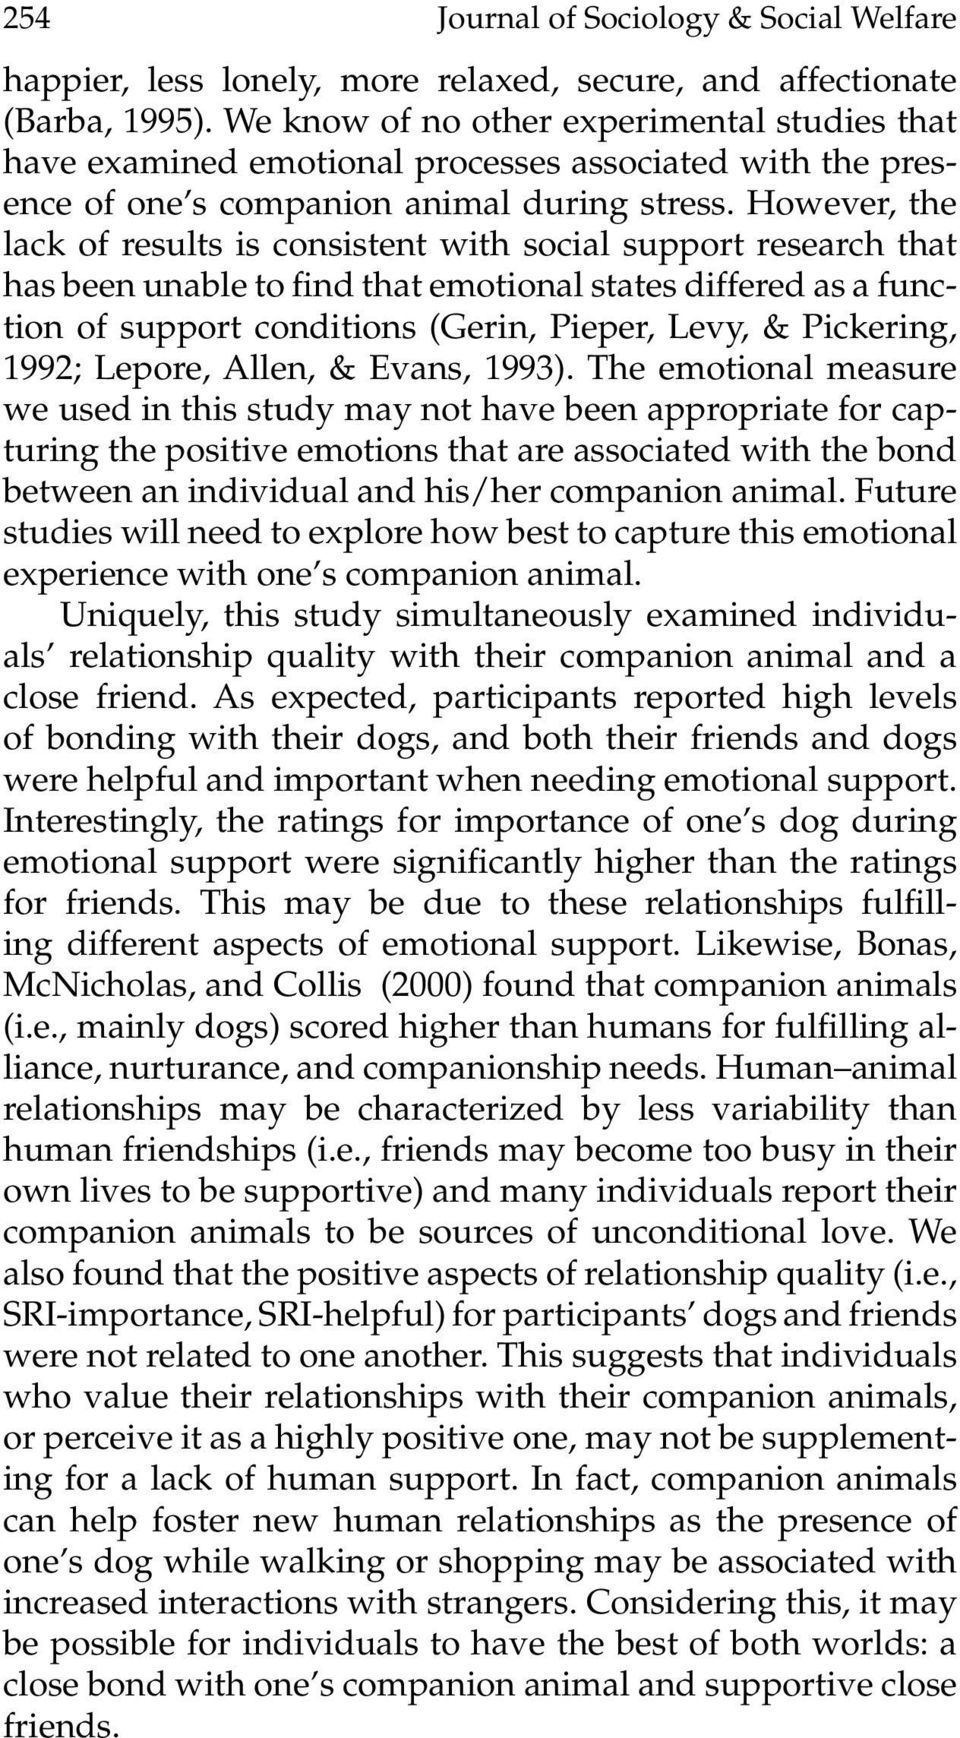 However, the lack of results is consistent with social support research that has been unable to find that emotional states differed as a function of support conditions (Gerin, Pieper, Levy, &